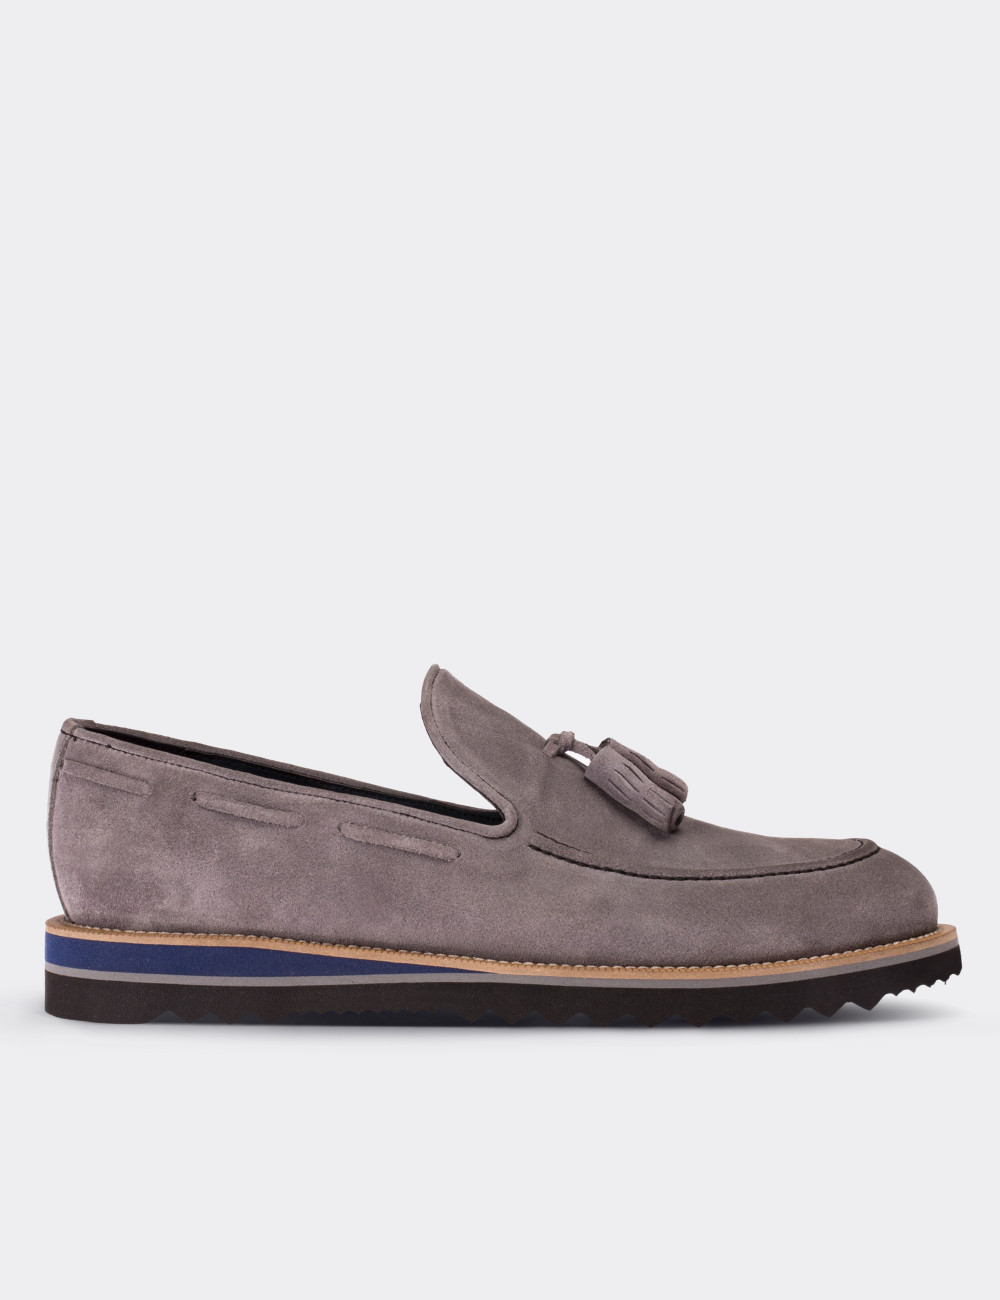 23cc8e6023c42 Gray Suede Calfskin Loafers & Moccasins Shoes - 01319MGRIE01